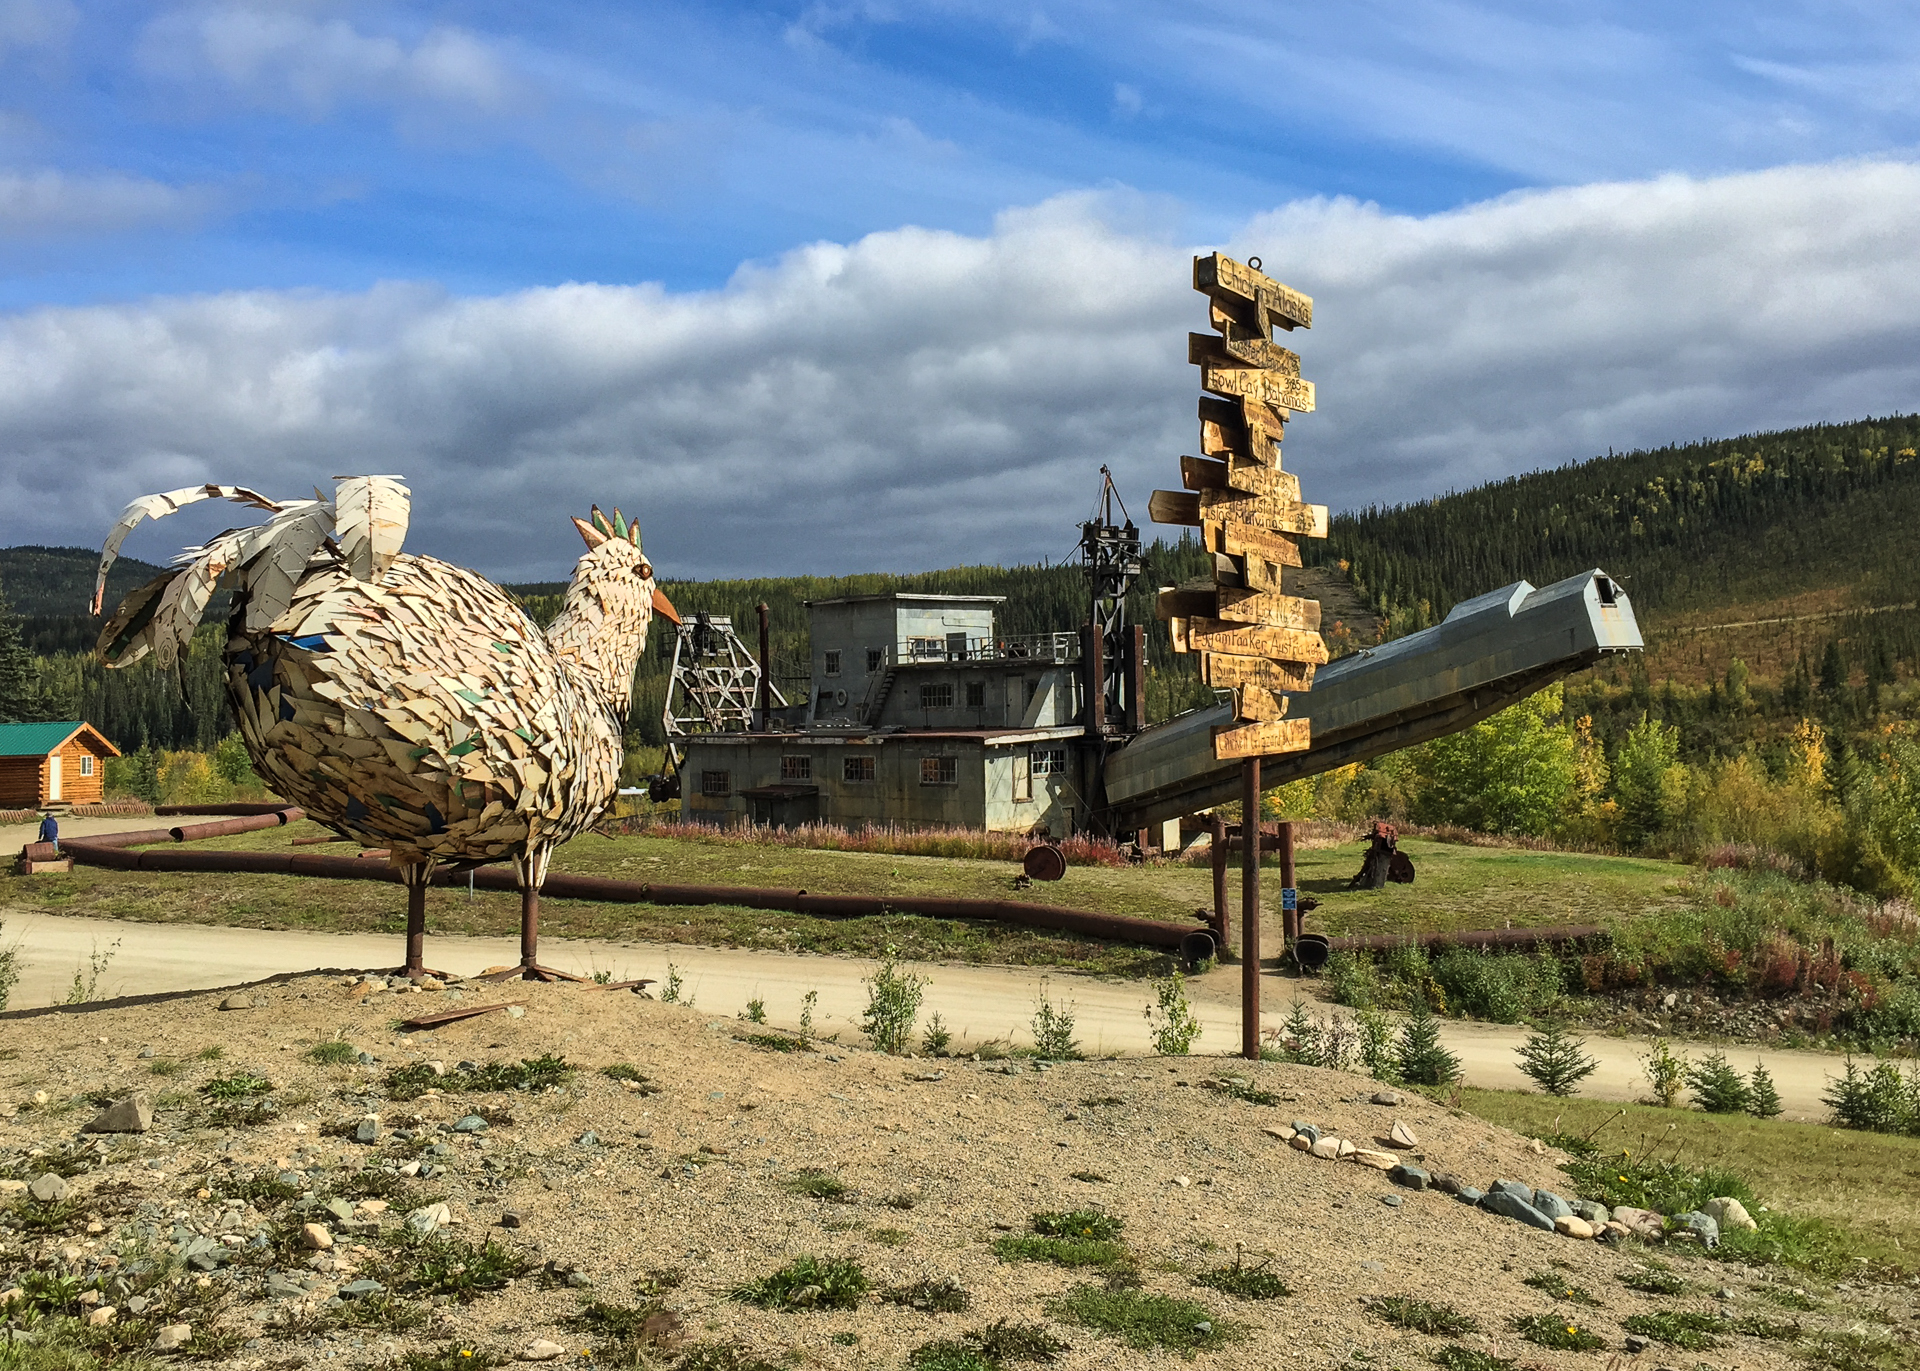 The chicken sculpture, and the old dredger, as the sun came out for a short while.